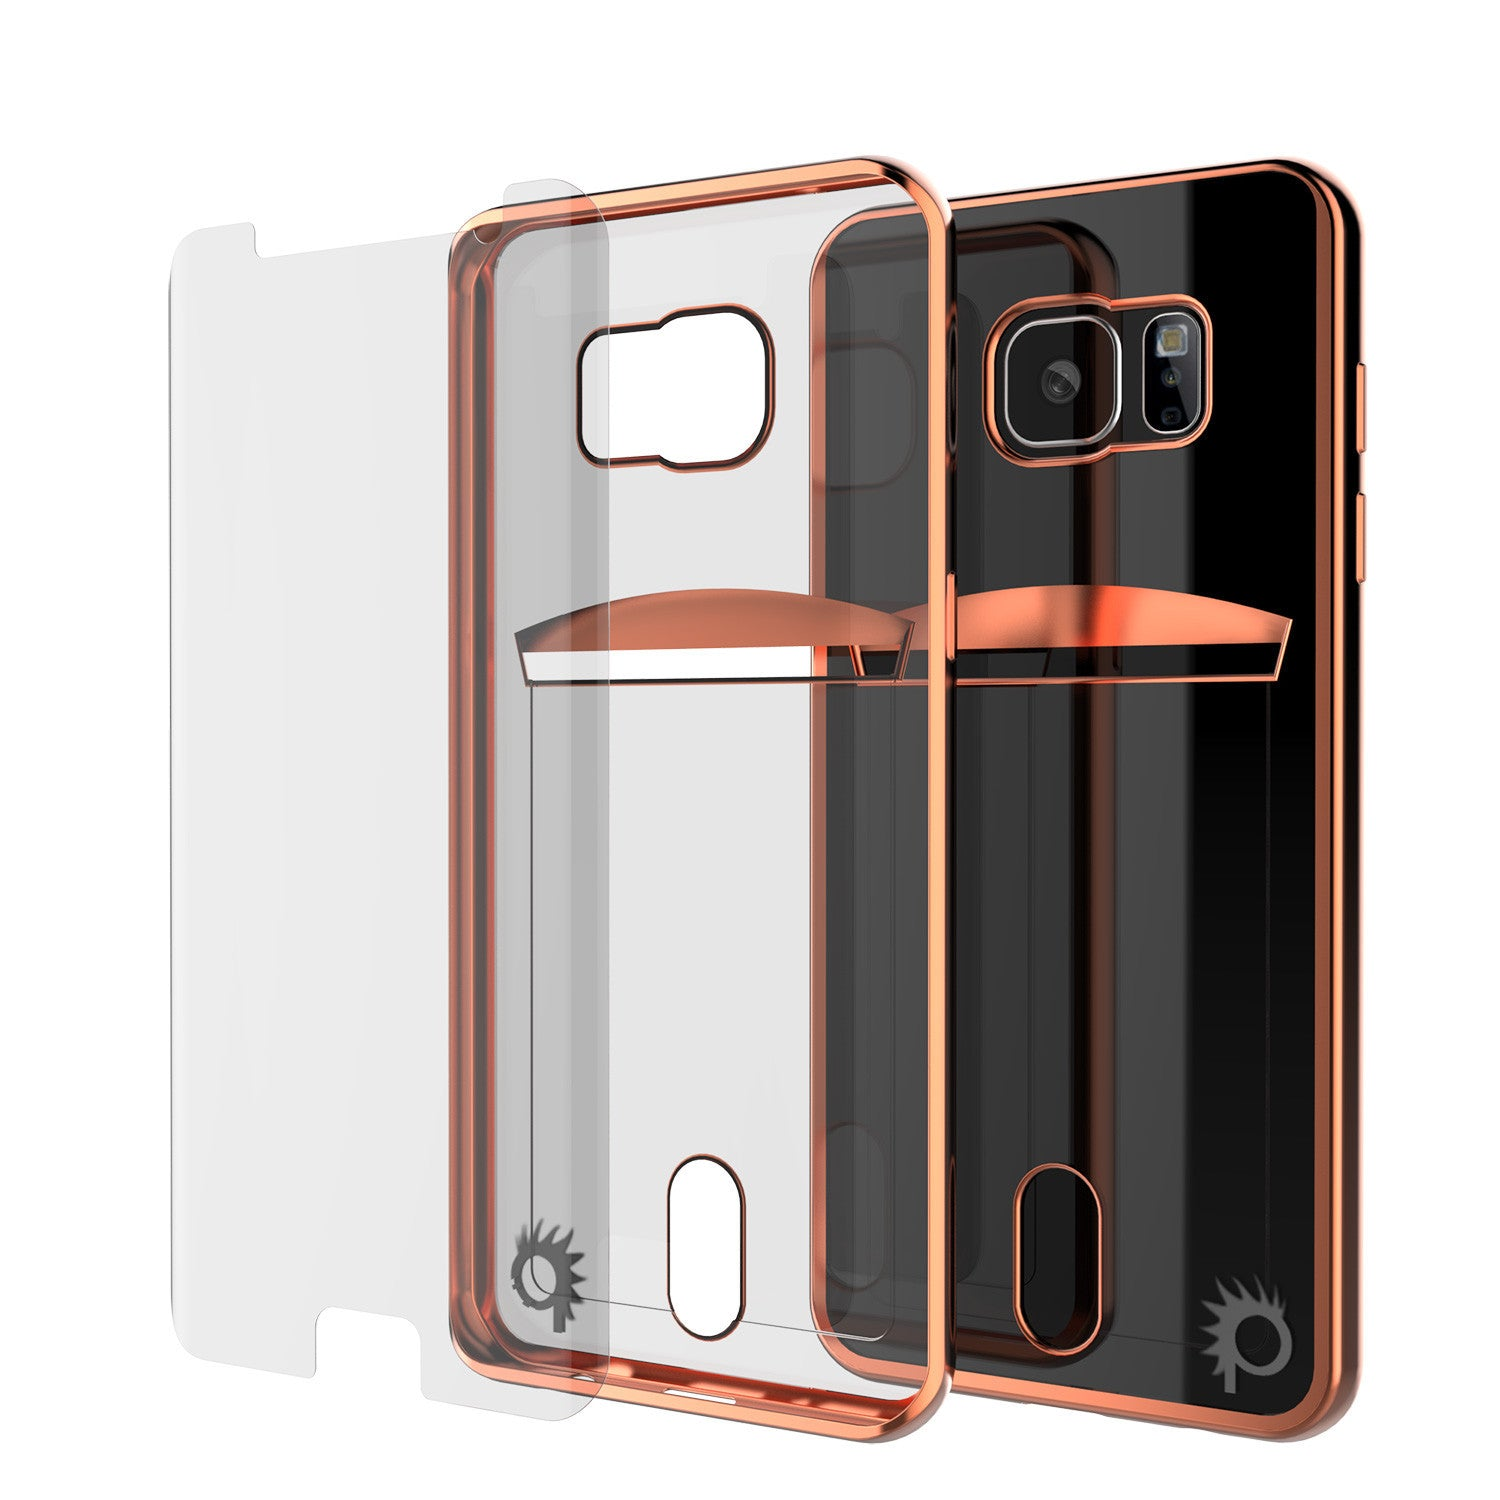 Galaxy S6 EDGE+ Plus Case, PUNKCASE® LUCID Rose Gold Series | Card Slot | SHIELD Screen Protector